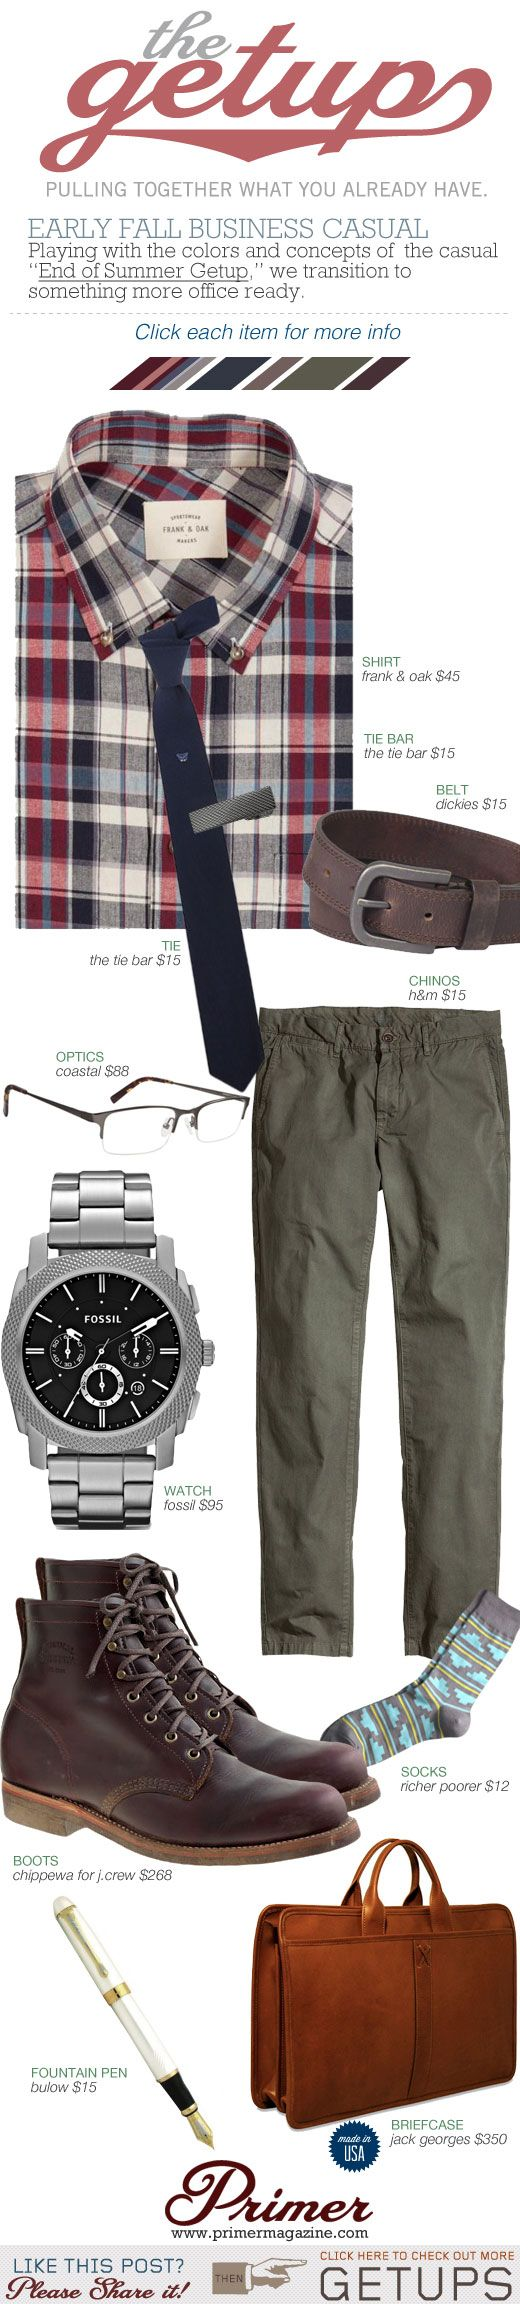 """The Getup: Early Fall Business Casual   'Playing with the colors and concepts of the casual """"End of Summer Getup,"""" we transition to something more office ready.'"""